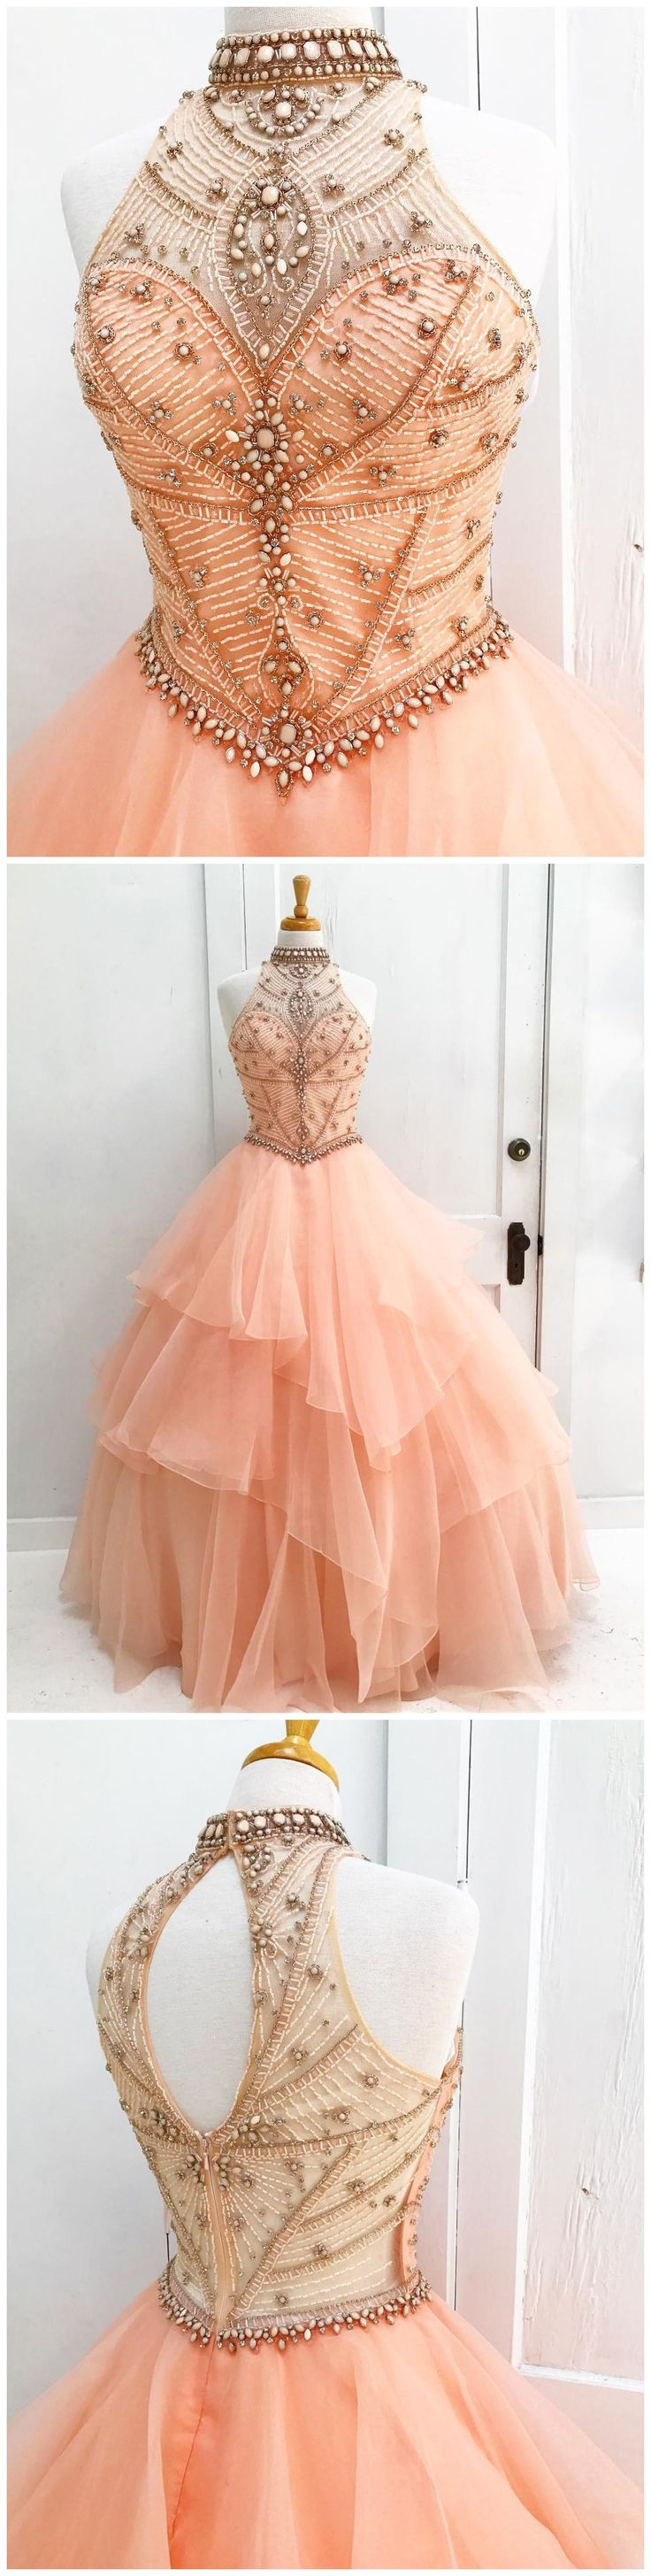 CHIC A-LINE HIGH NECK PEARL PINK BEADING MODEST LONG PROM DRESS EVENING DRESS AM551  Maybe not such a poofy skirt tho